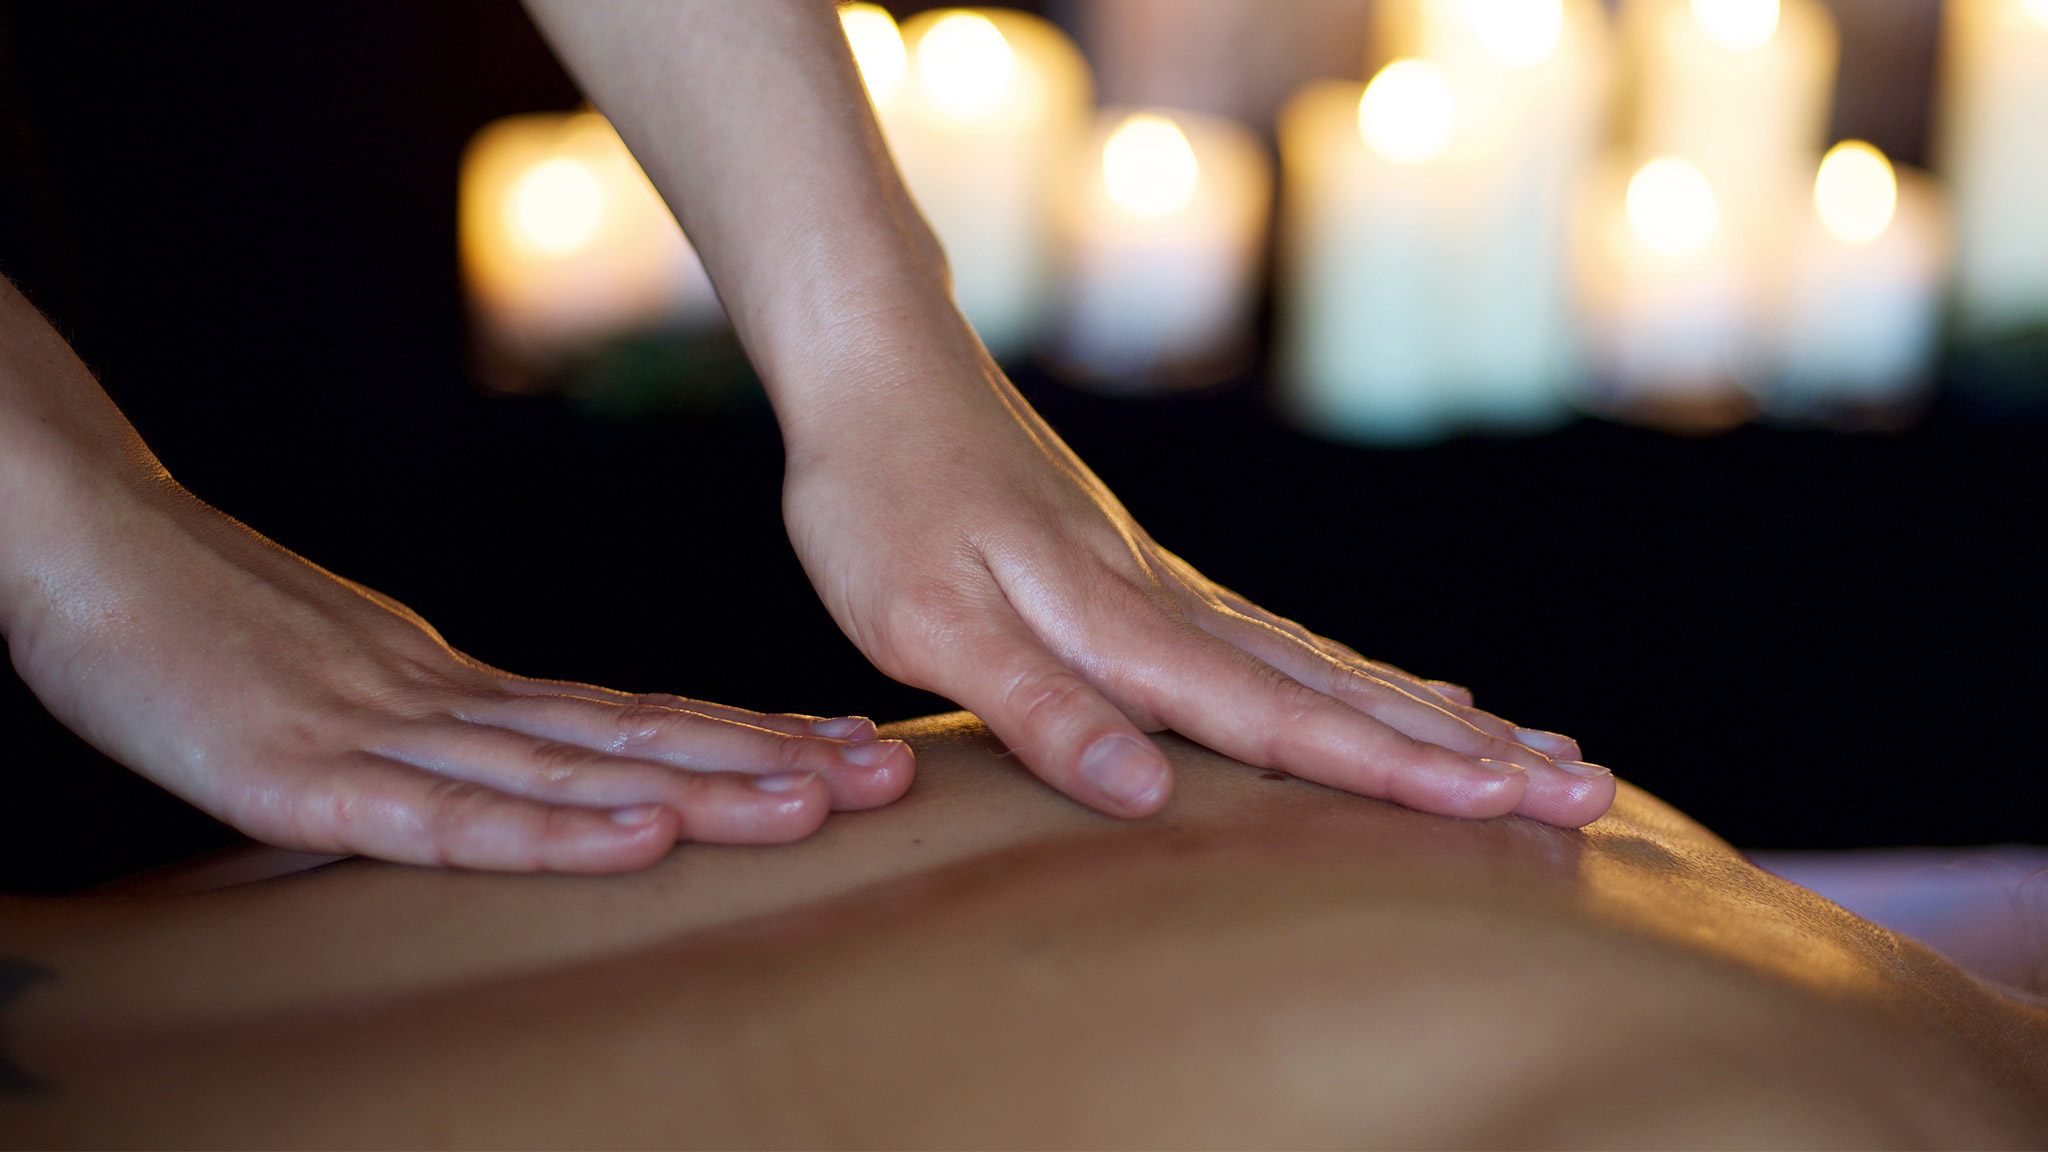 Classic Soul and Body Revival spa treatment package